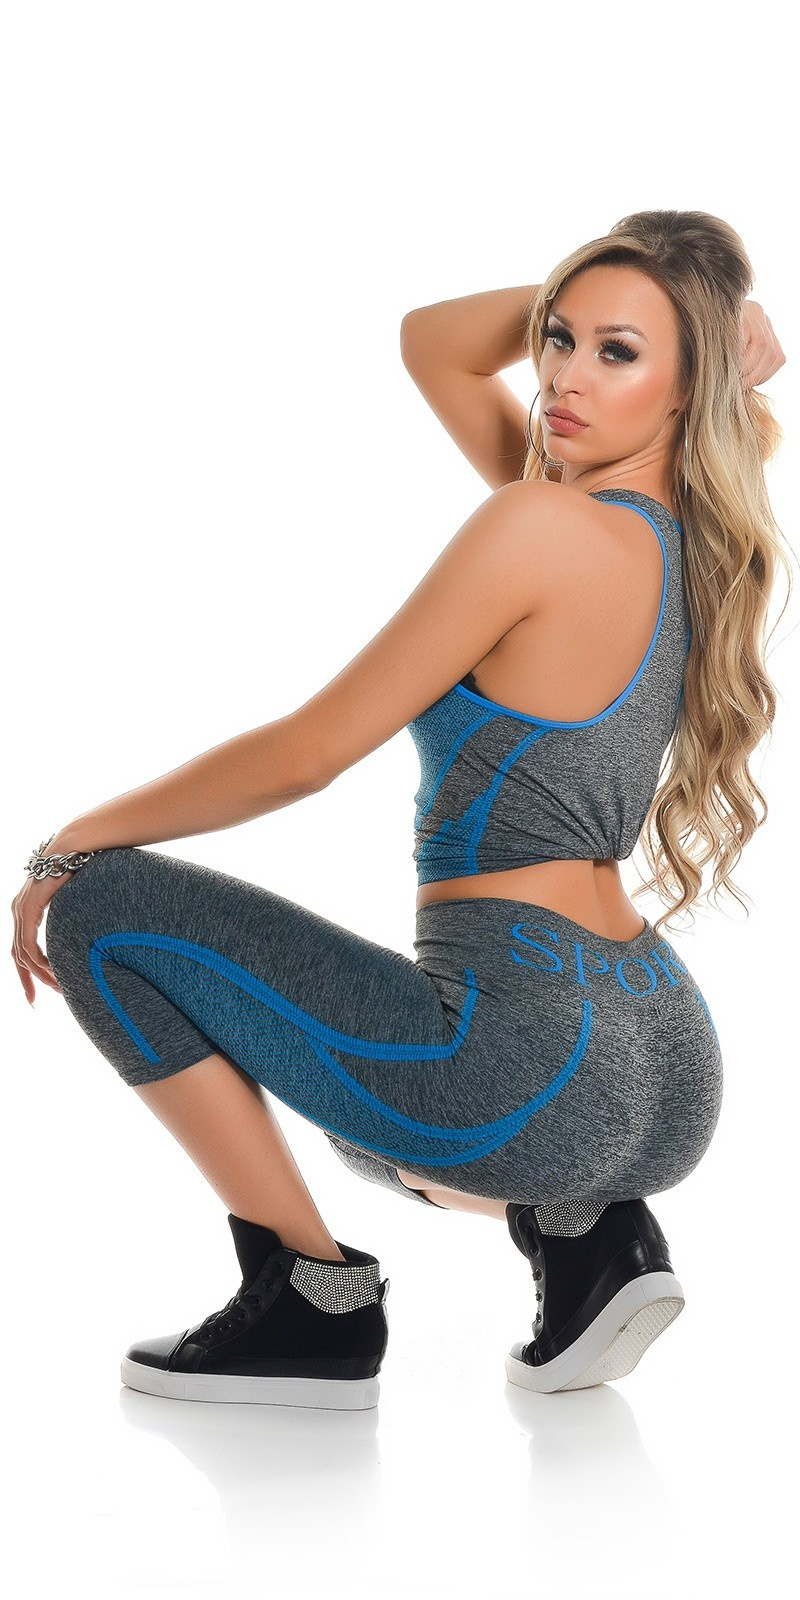 Trendy Workout Outfit Tanktop & Caprileggings Blue